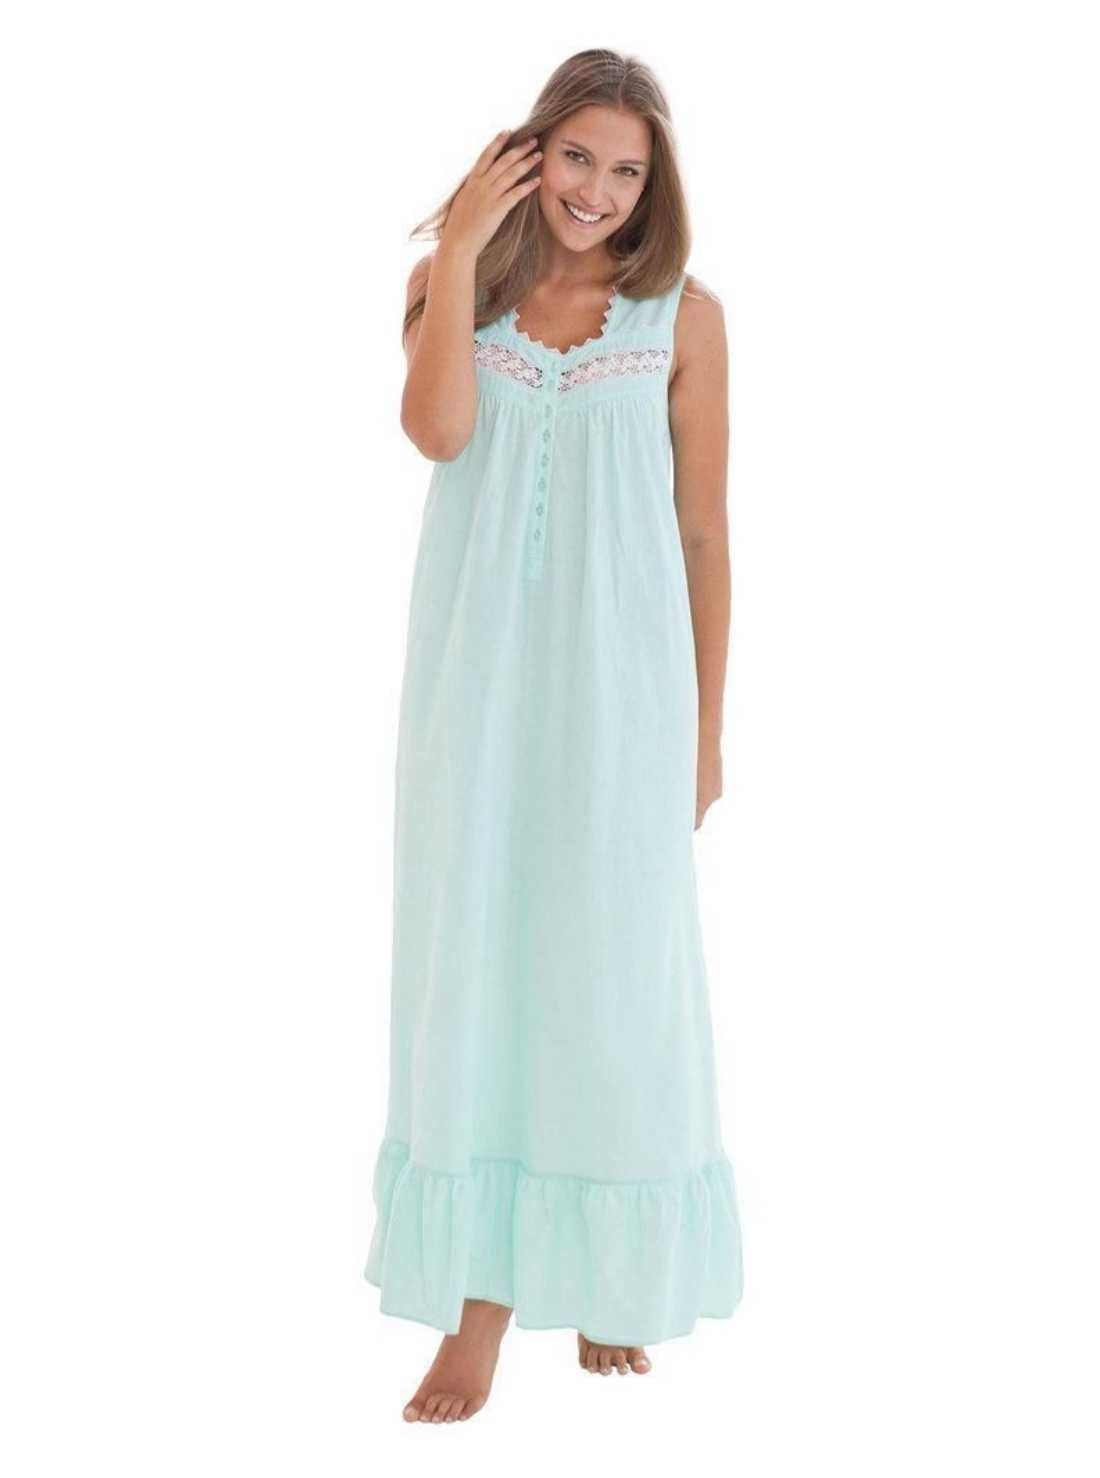 Woven Cotton Night Gown